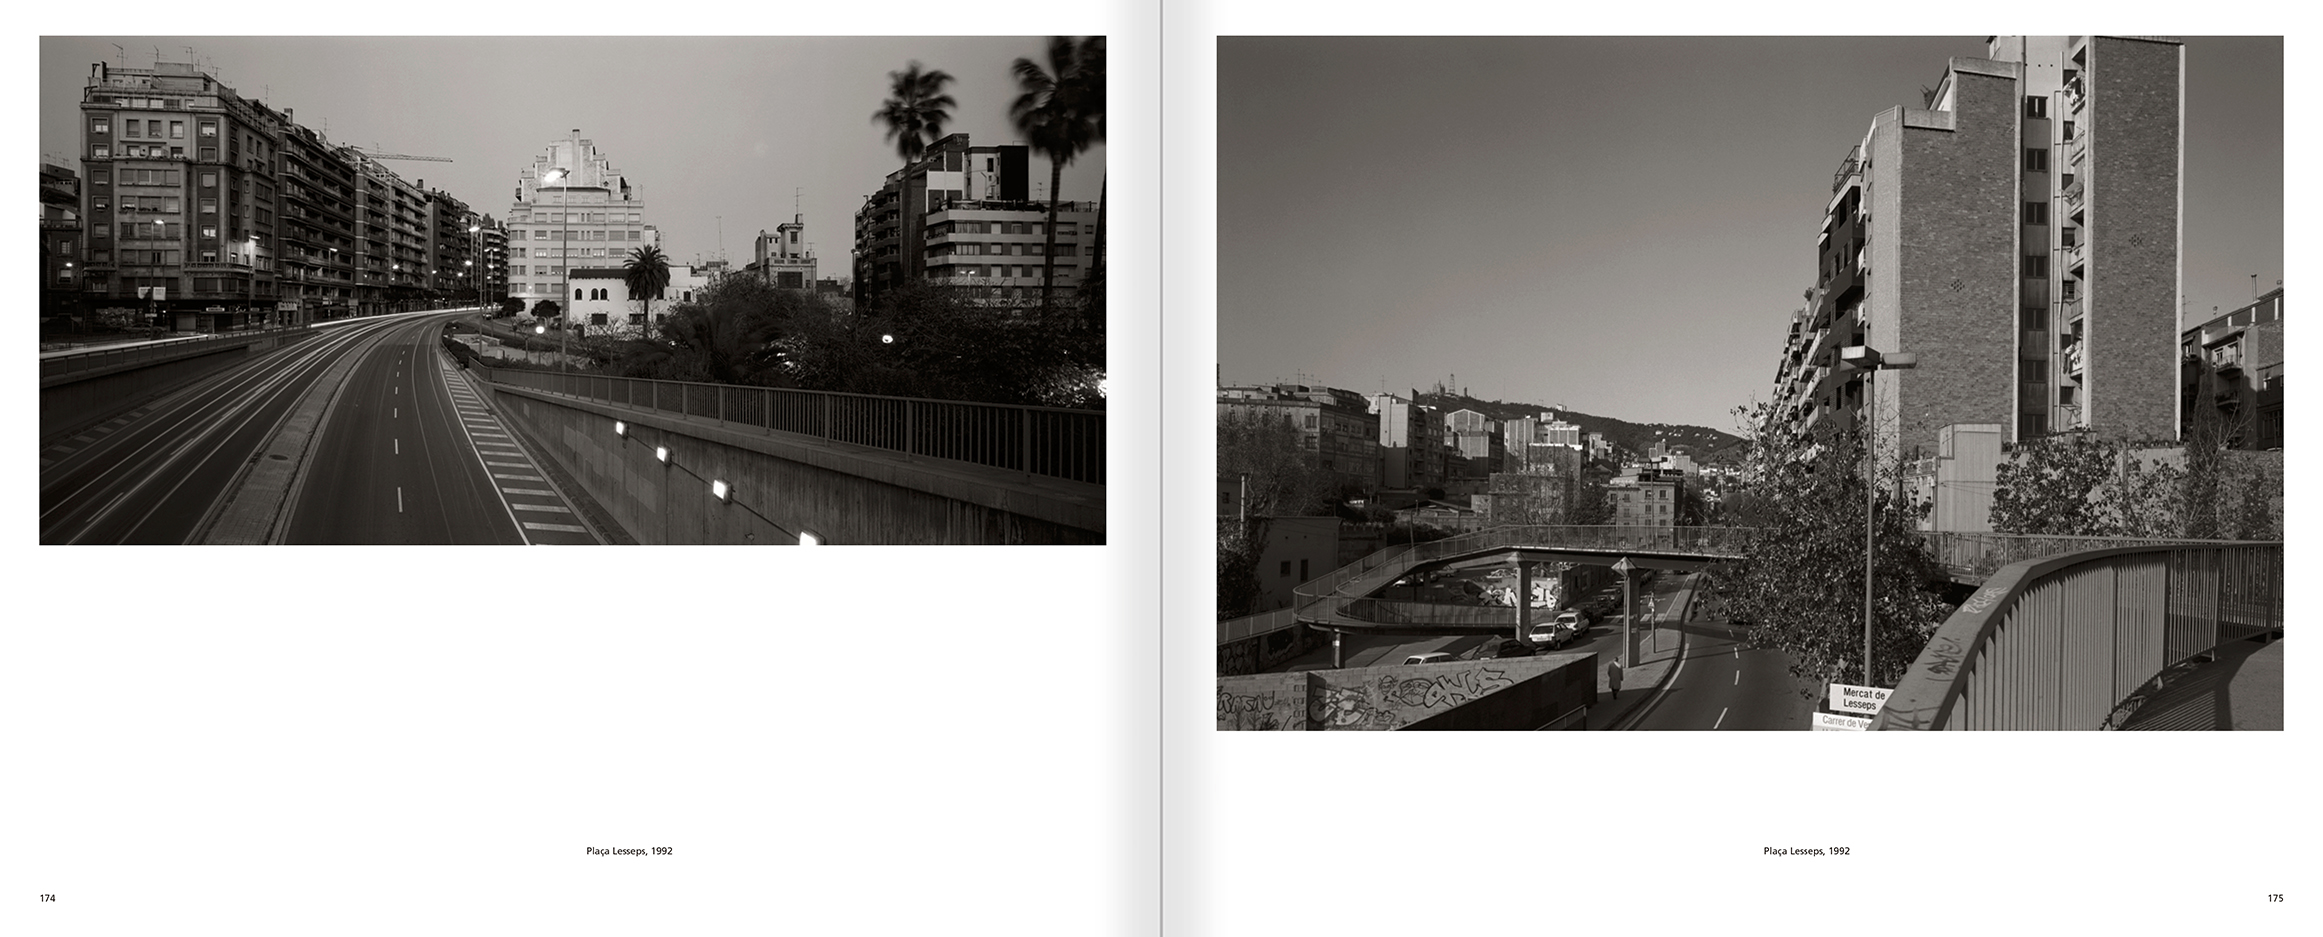 Selection from the catalogue 'Barcelona 1978-1997. Manolo Laguillo', pages 174 and 175